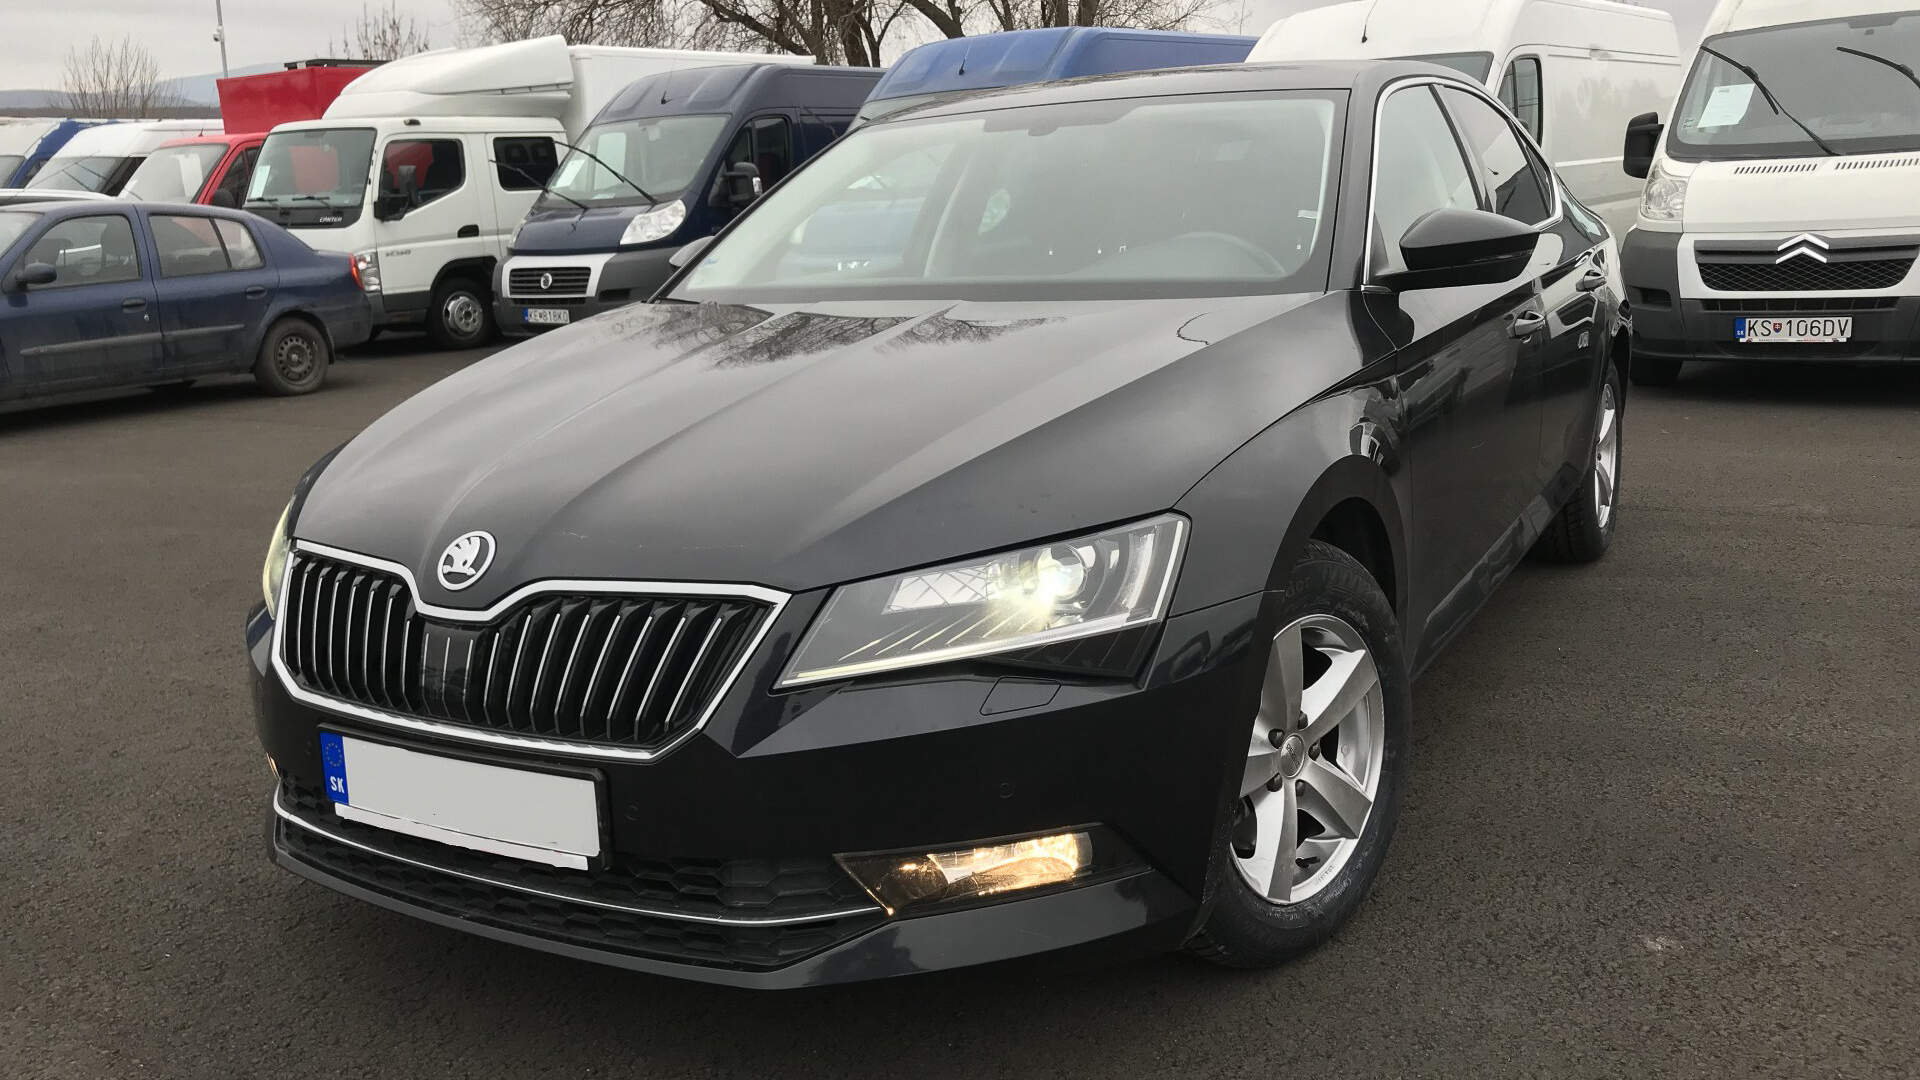 Škoda Superb 2.0 TDI (4)